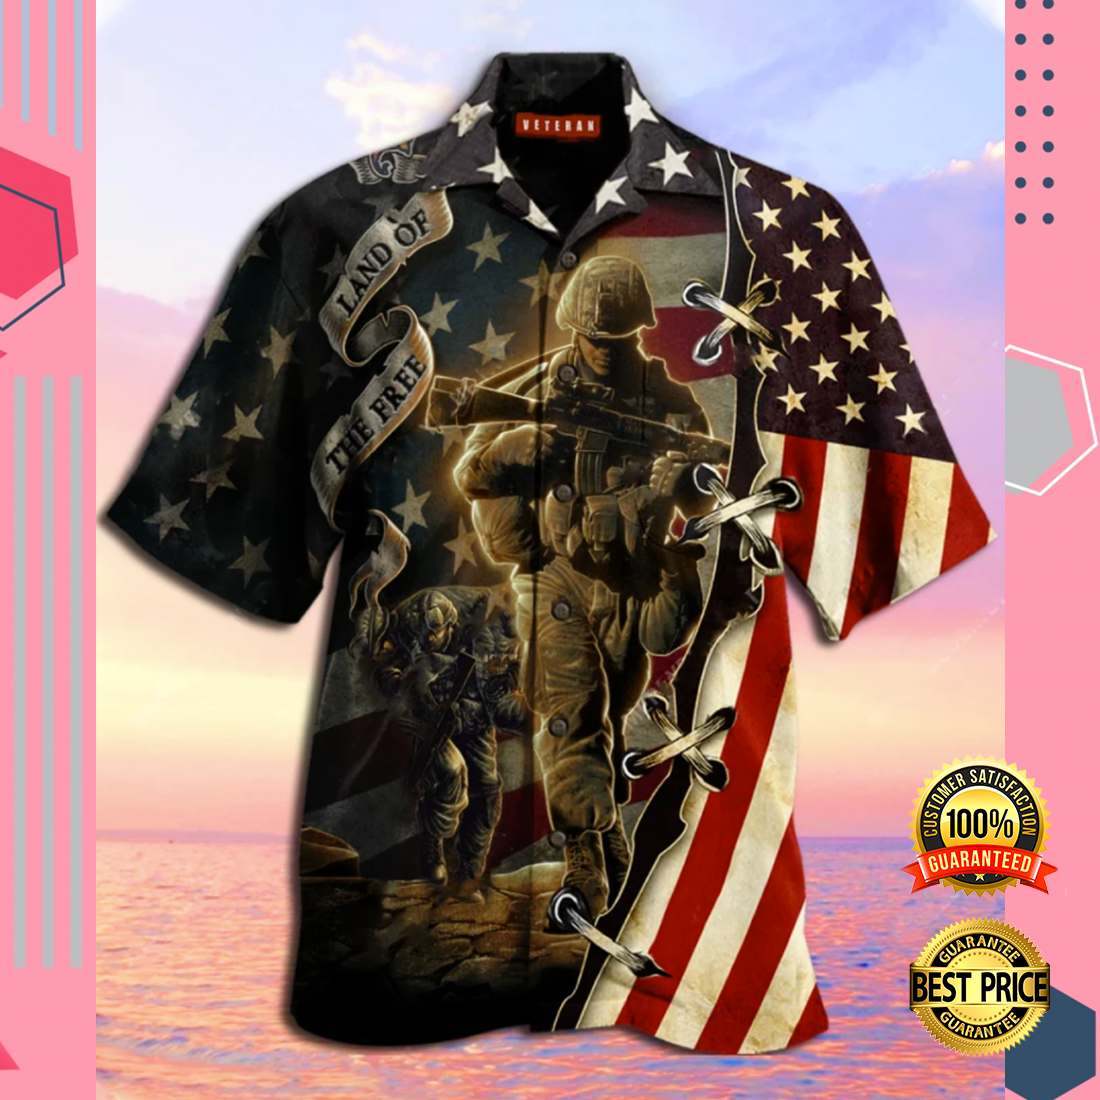 AMERICA LAND OF THE FREE HAWAIIAN SHIRT 5